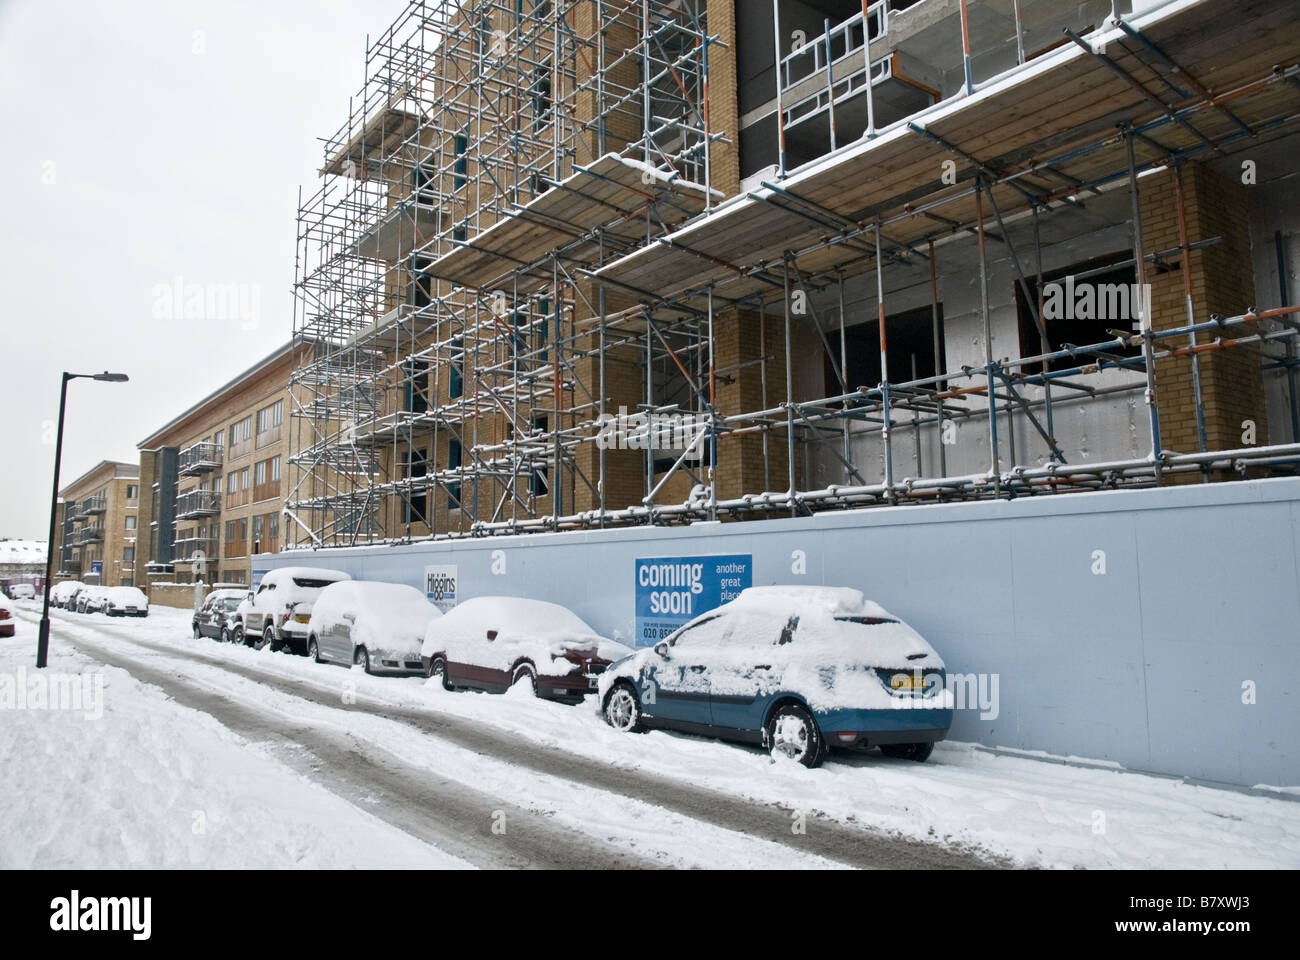 COSTRUCTION SİTE,AFTER THE HAVY SNOW FALL,SEEN OF WORK STOPPED,LONDON SOUTHEAST 2 FEBRUARY 2009 - Stock Image